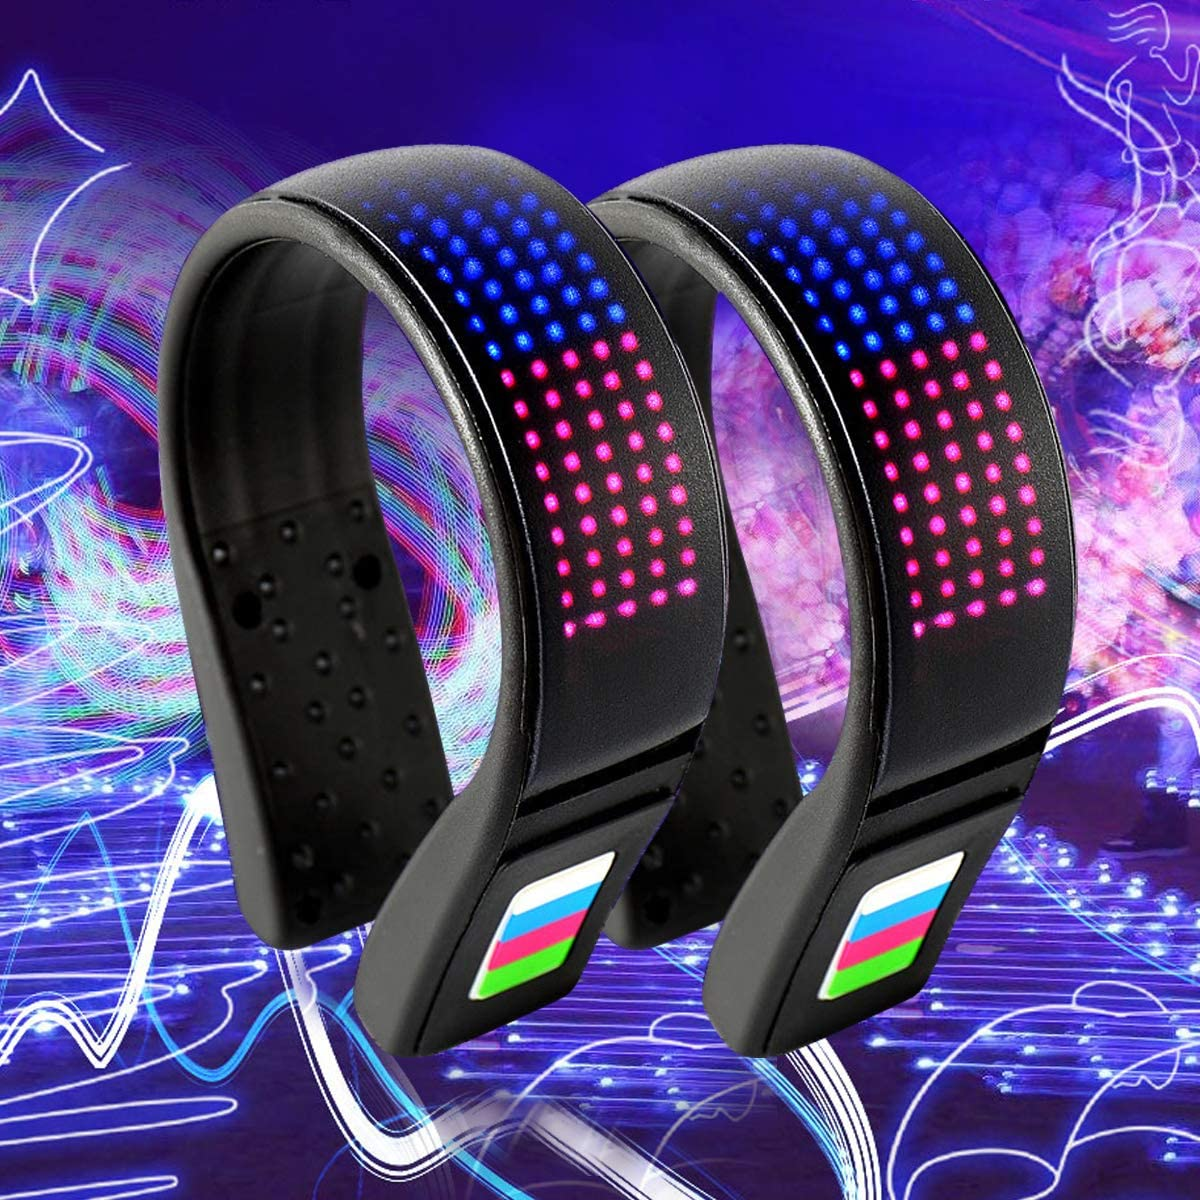 Coolnice Shoe Lights for Runners Clip on Safety Lights for Runners Walkers Led Shoe Clips Lights USB Charging IP67 Waterproof Reflective Gear for Runners 11 Flash Modes